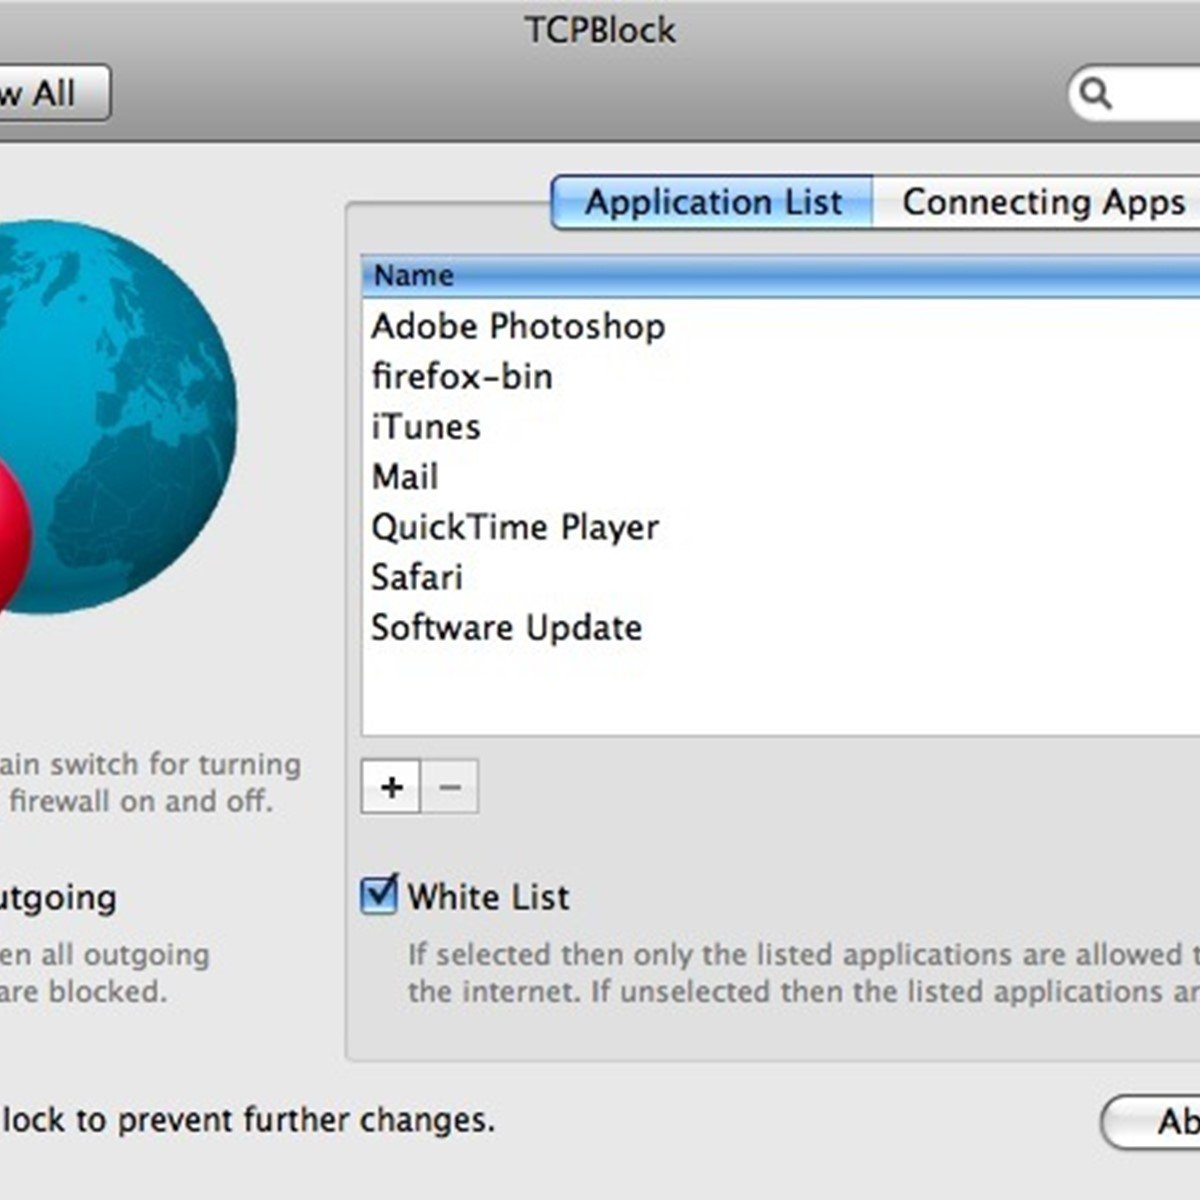 Tcpblock 4.2 for mac